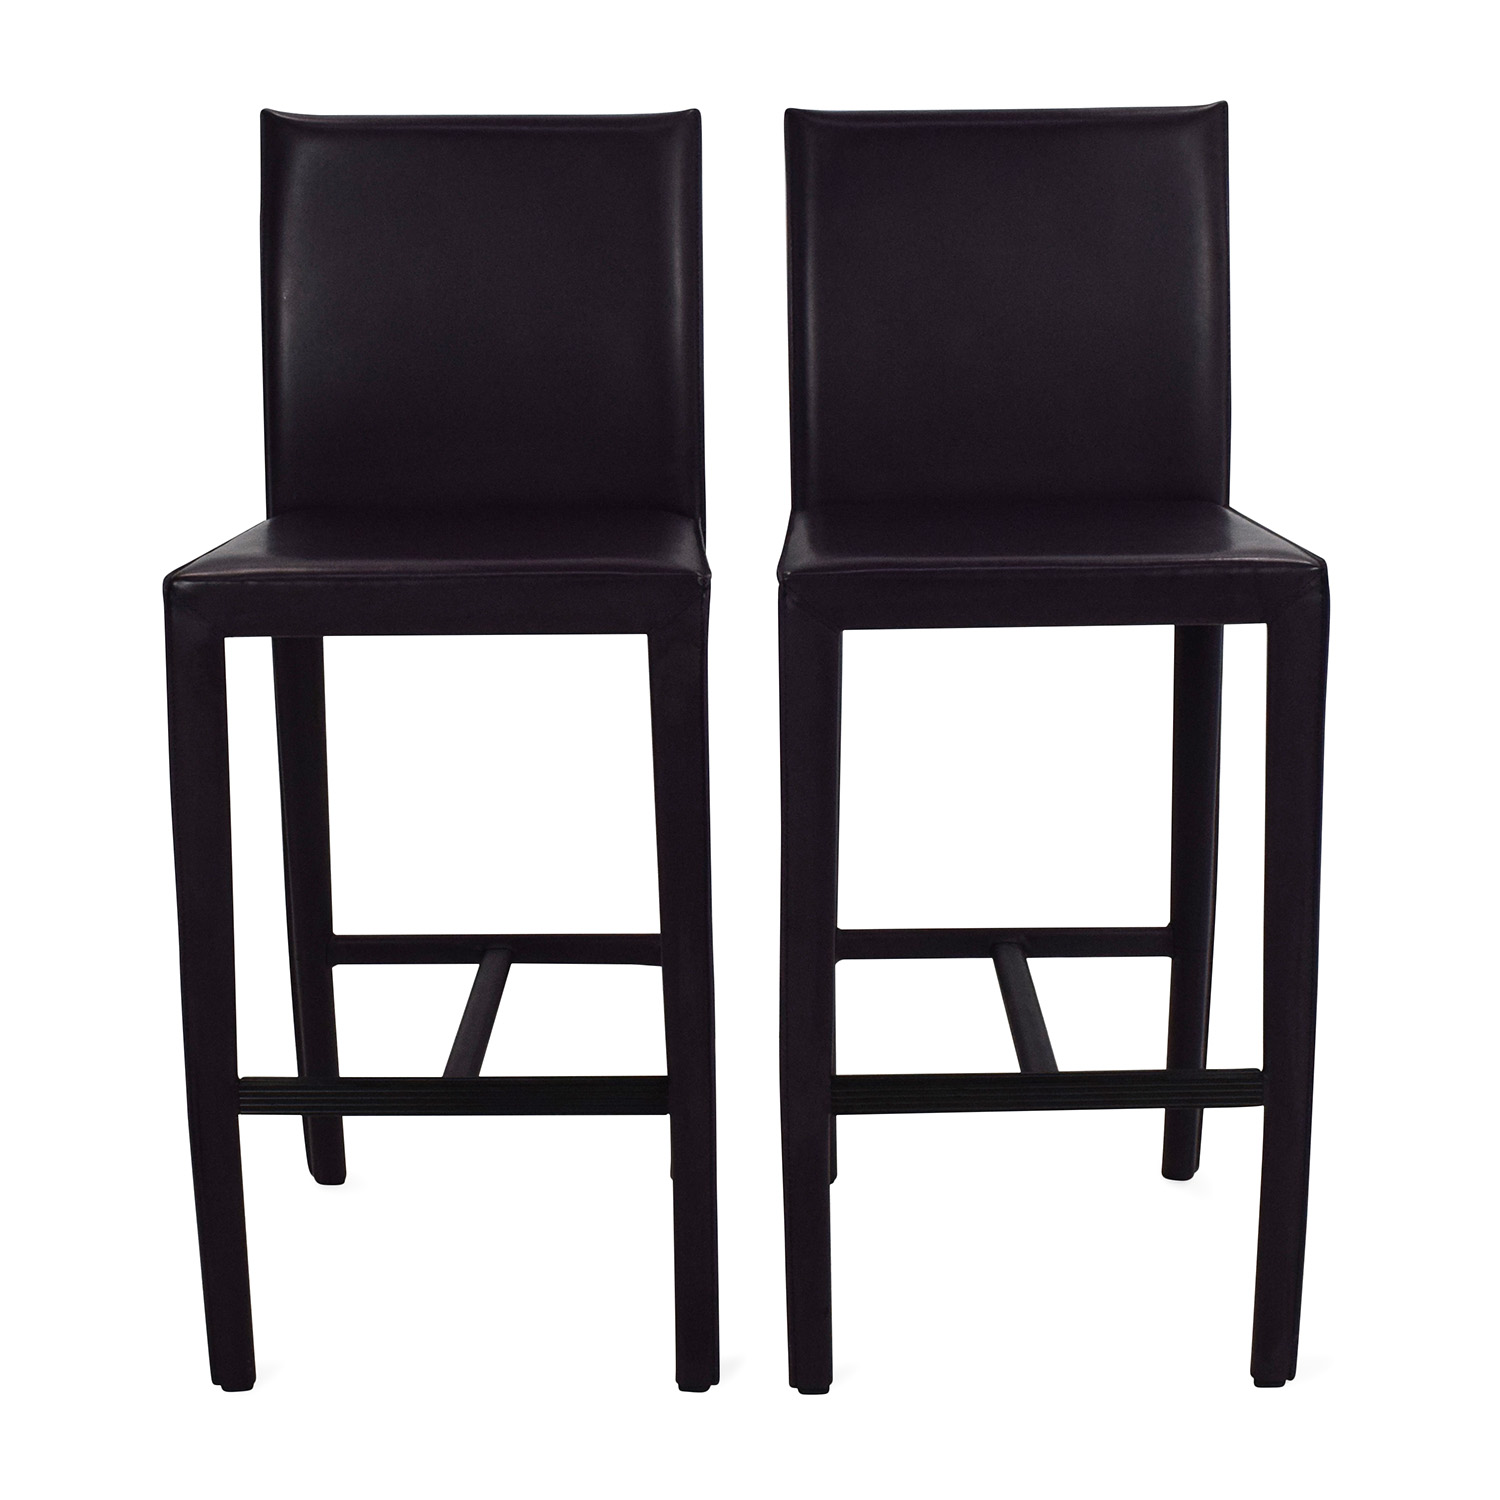 61 OFF Crate and Barrel Crate Barrel Folio Leather Barstools